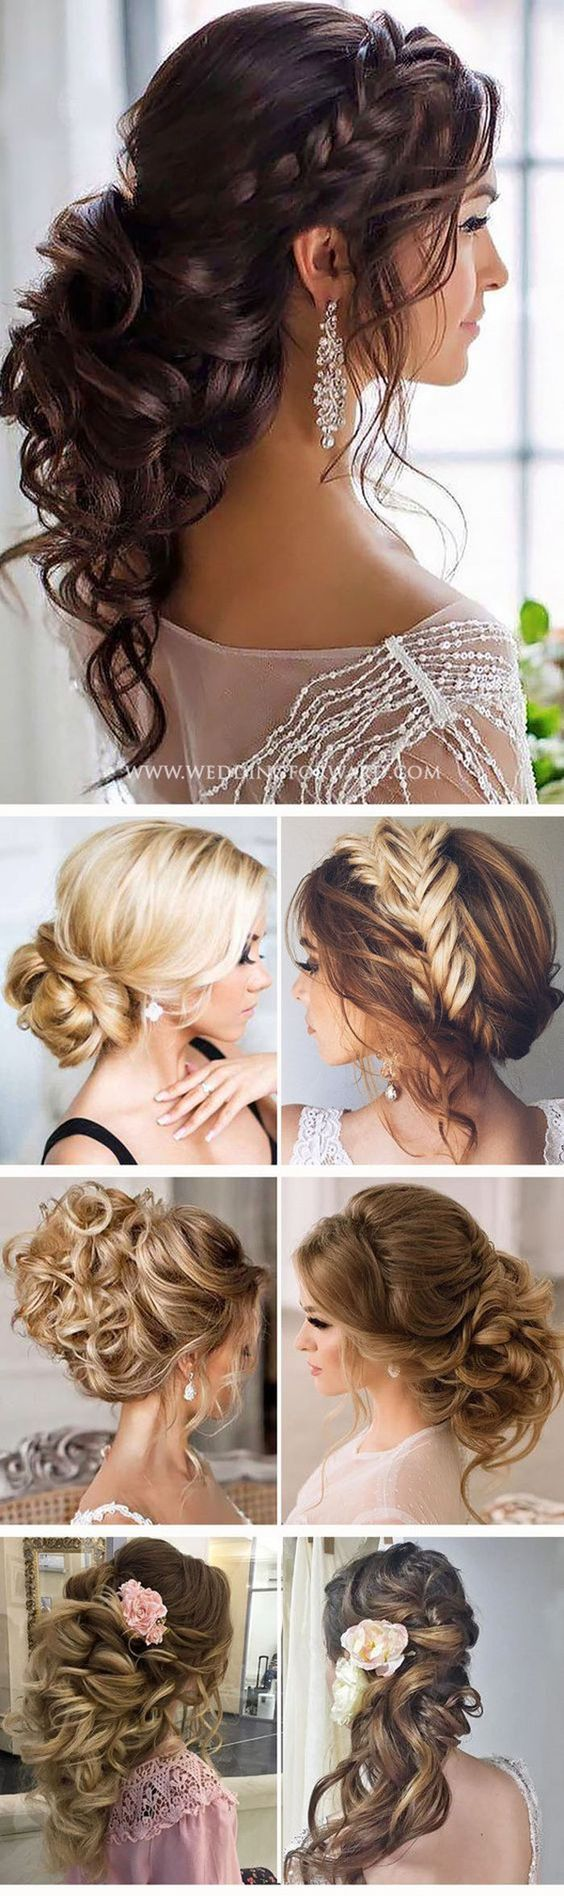 Bridal wedding hairstyle inspiration for long hair halflang haar